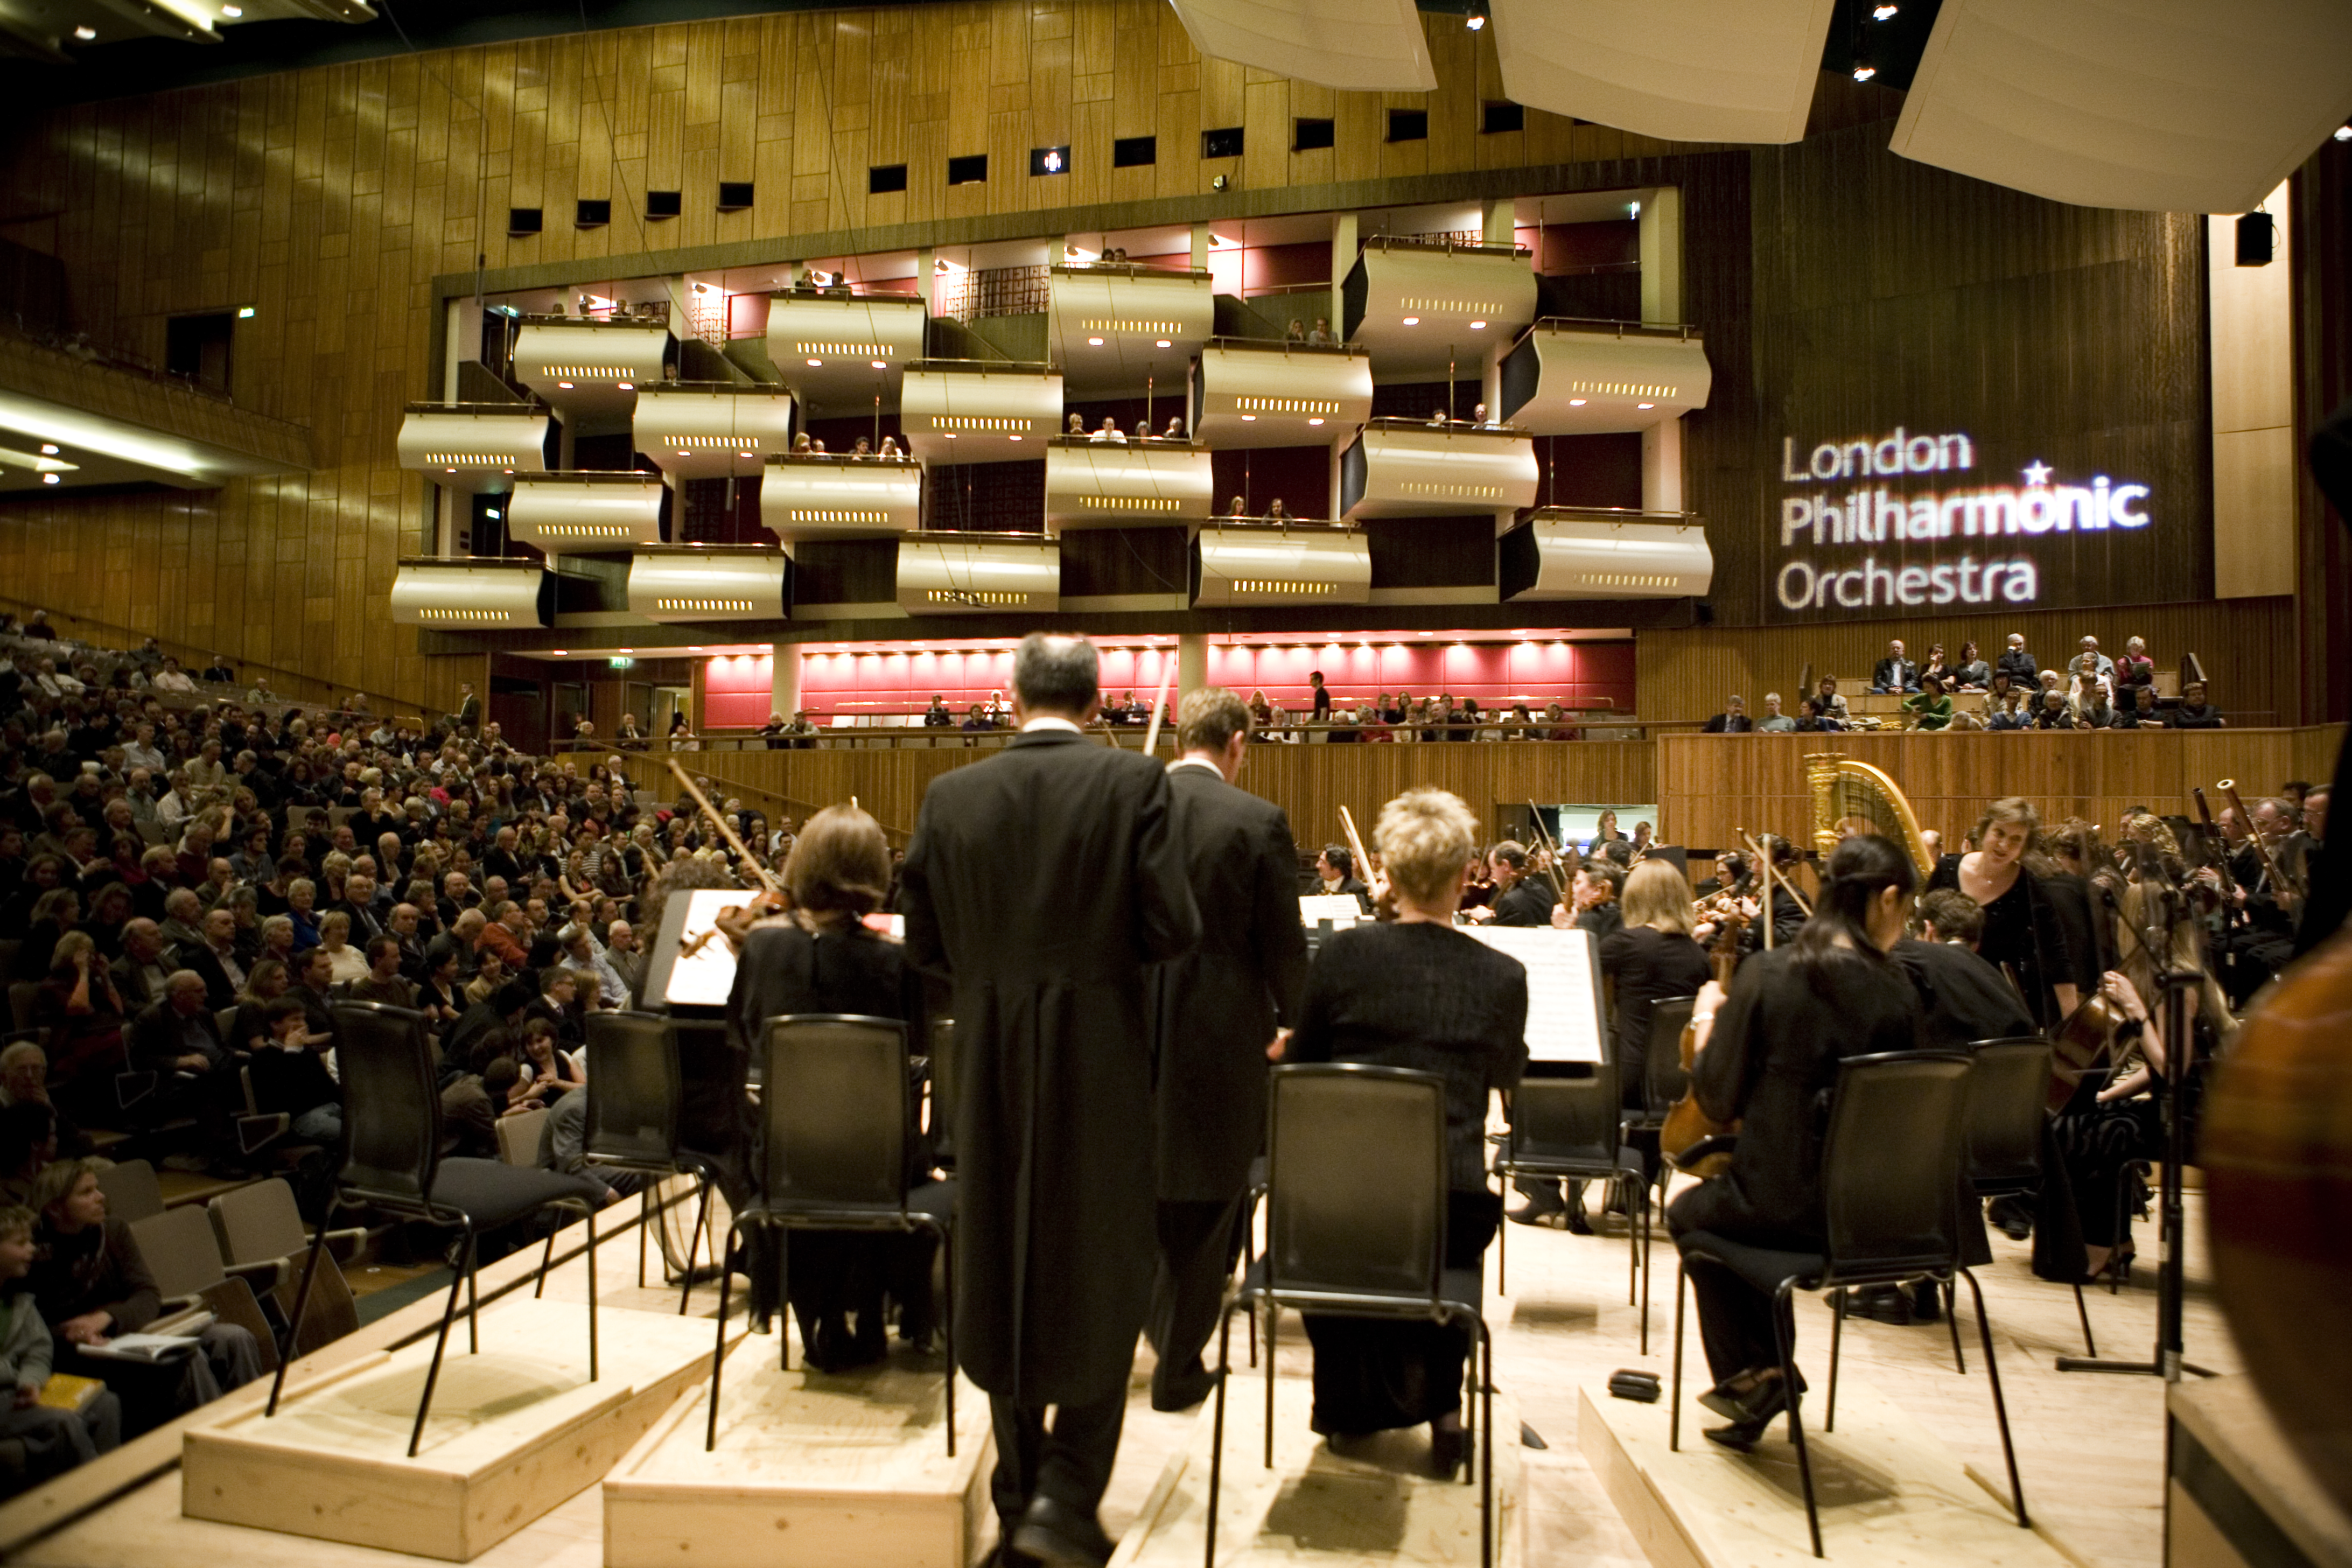 London Philharmonic Orchestra at Royal Festival Hall